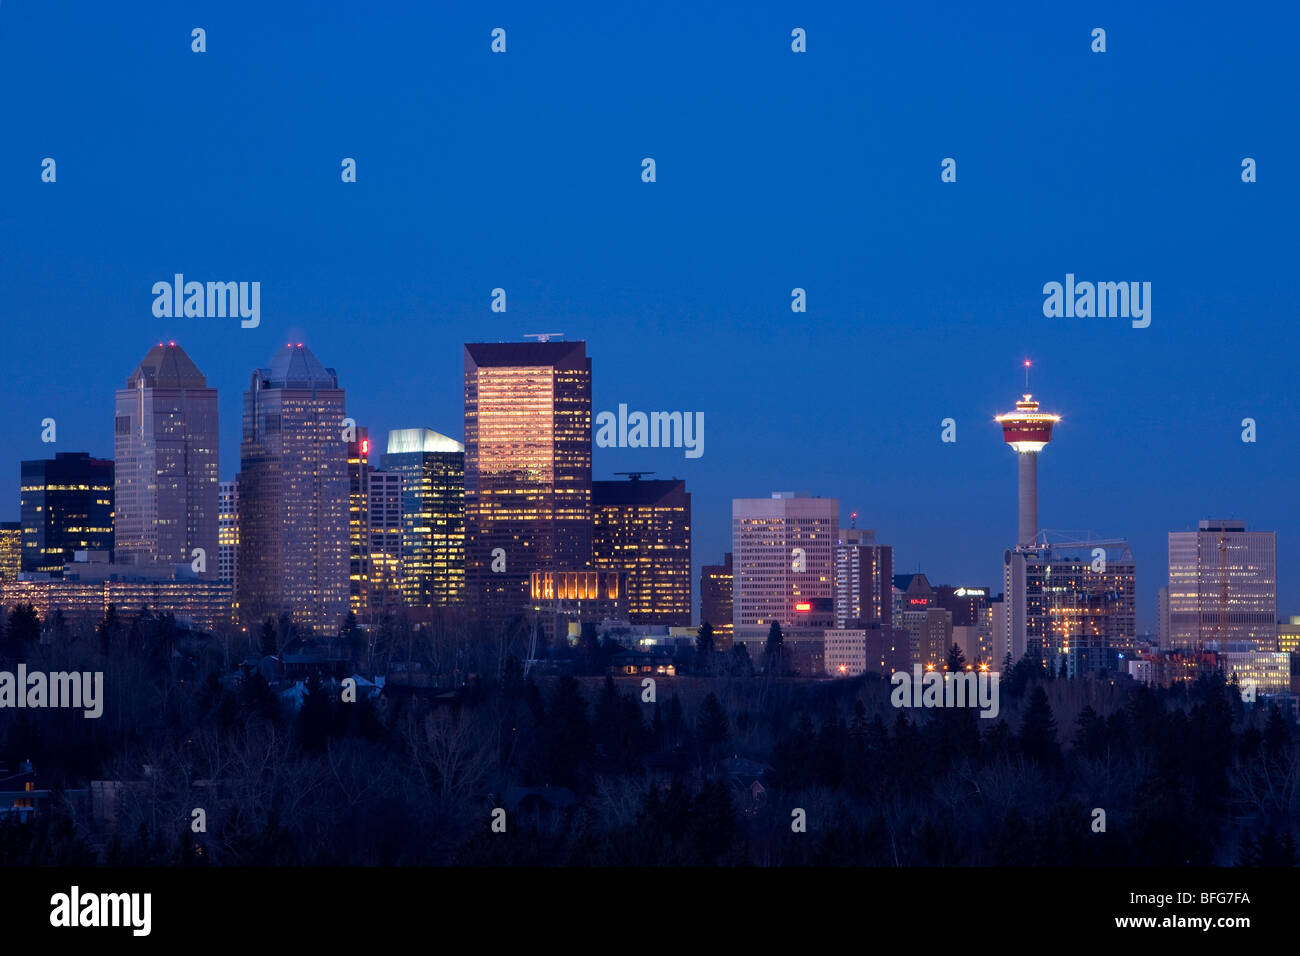 Skyline of Calgary, Alberta looking north with a view of the Calgary Tower on a clear night - Stock Image